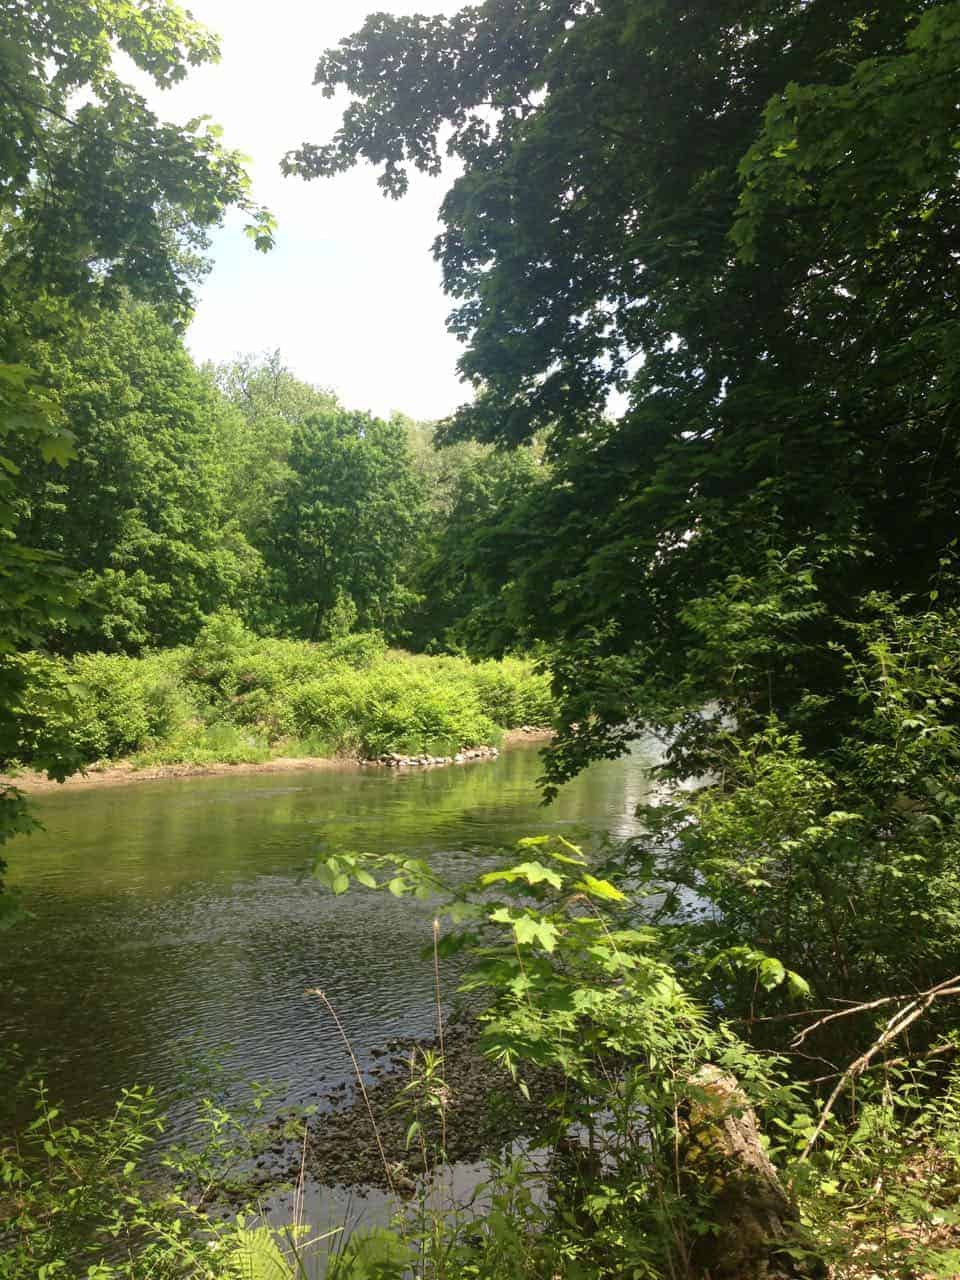 The Hoosic River runs shallow near its meeting with the Green River. Photo by Kate Abbott